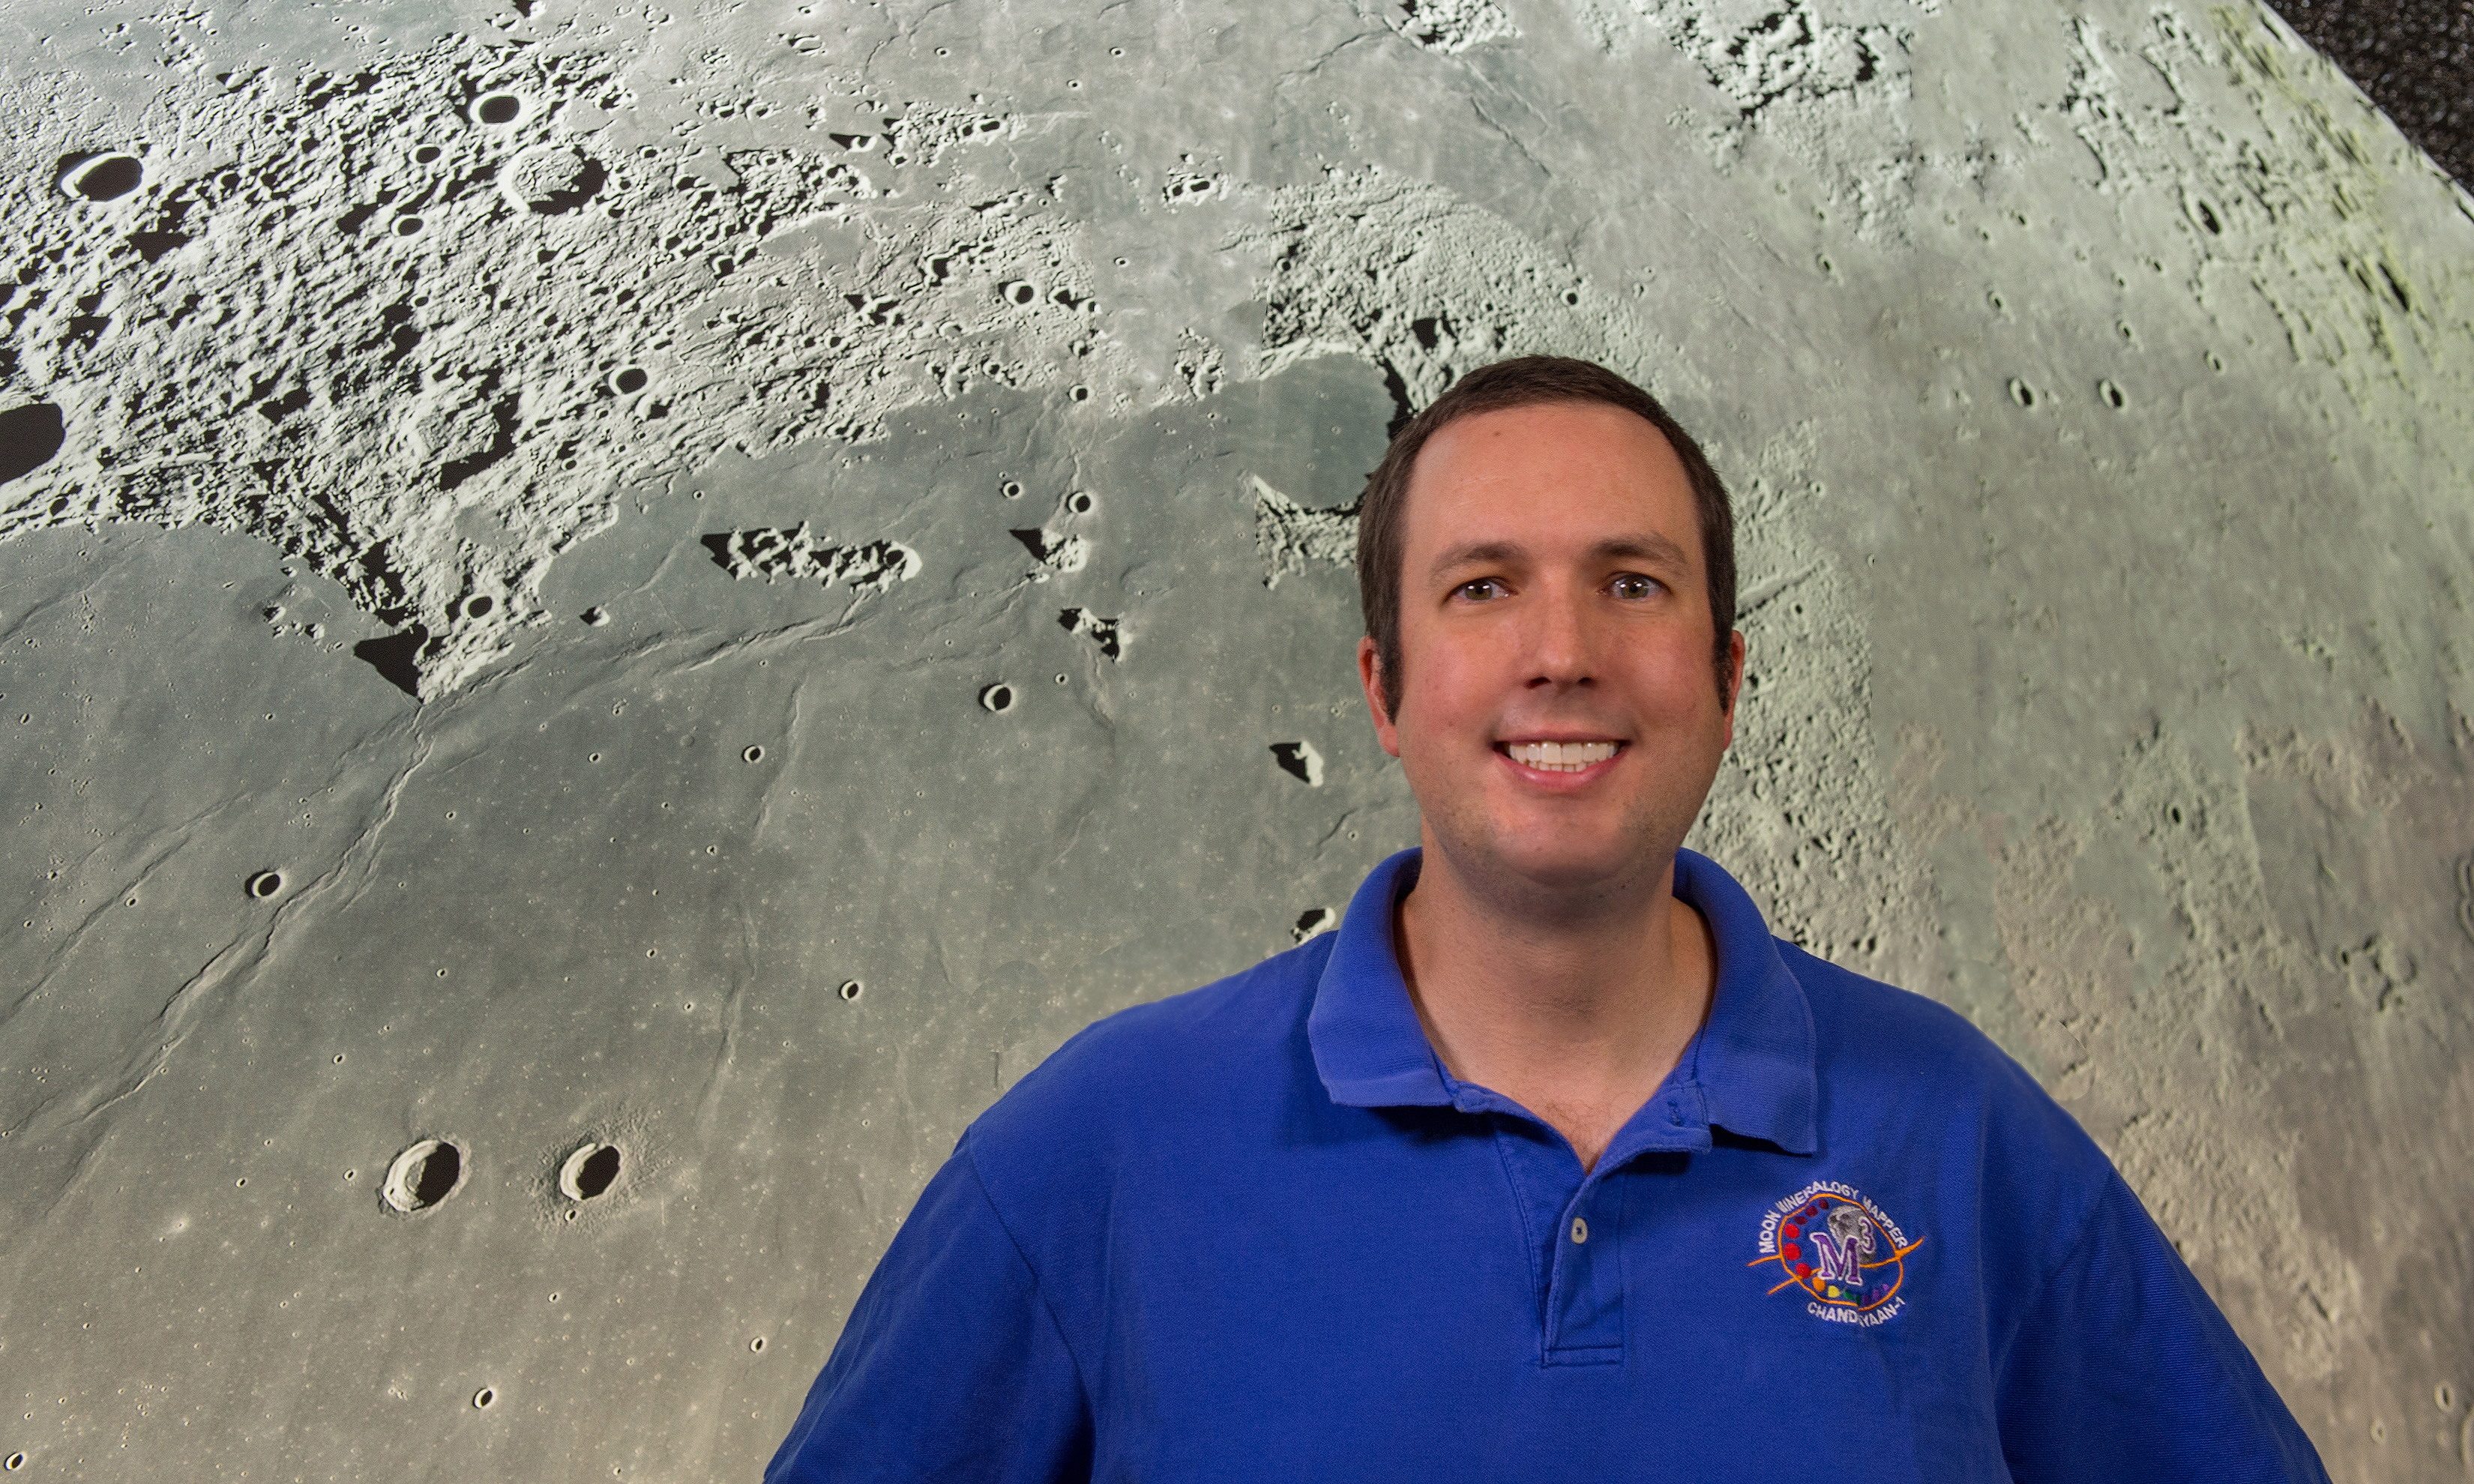 Photo of Noah Petro in front of a large photo of the Moon